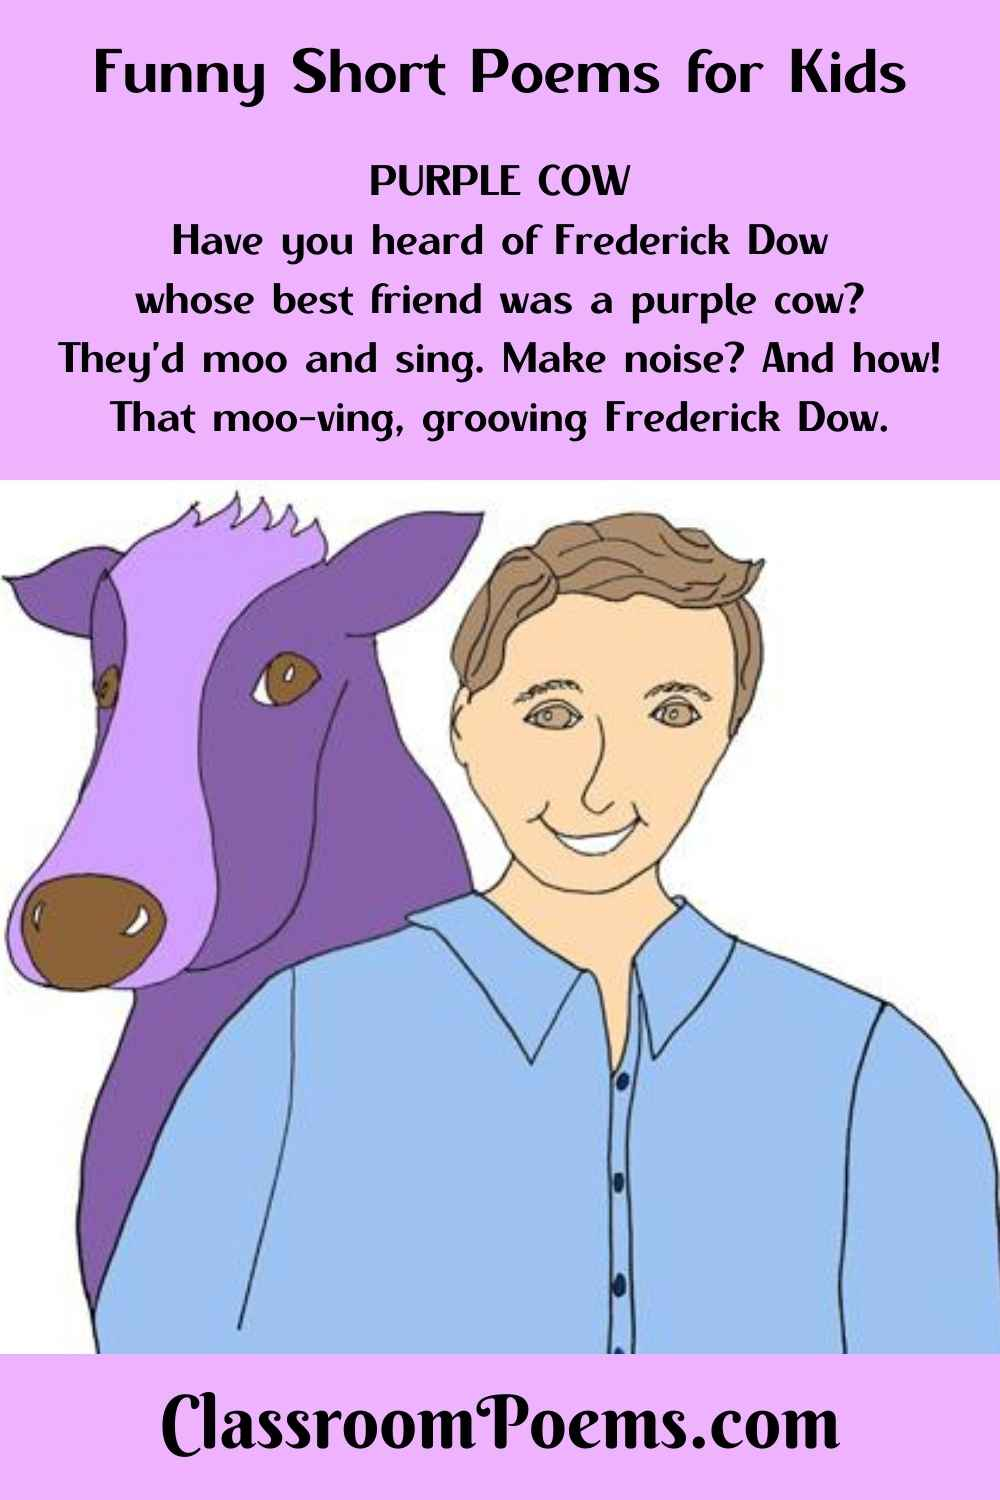 Purple Cow, Funny short poem by Denise Rodgers on ClassroomPoems.com.